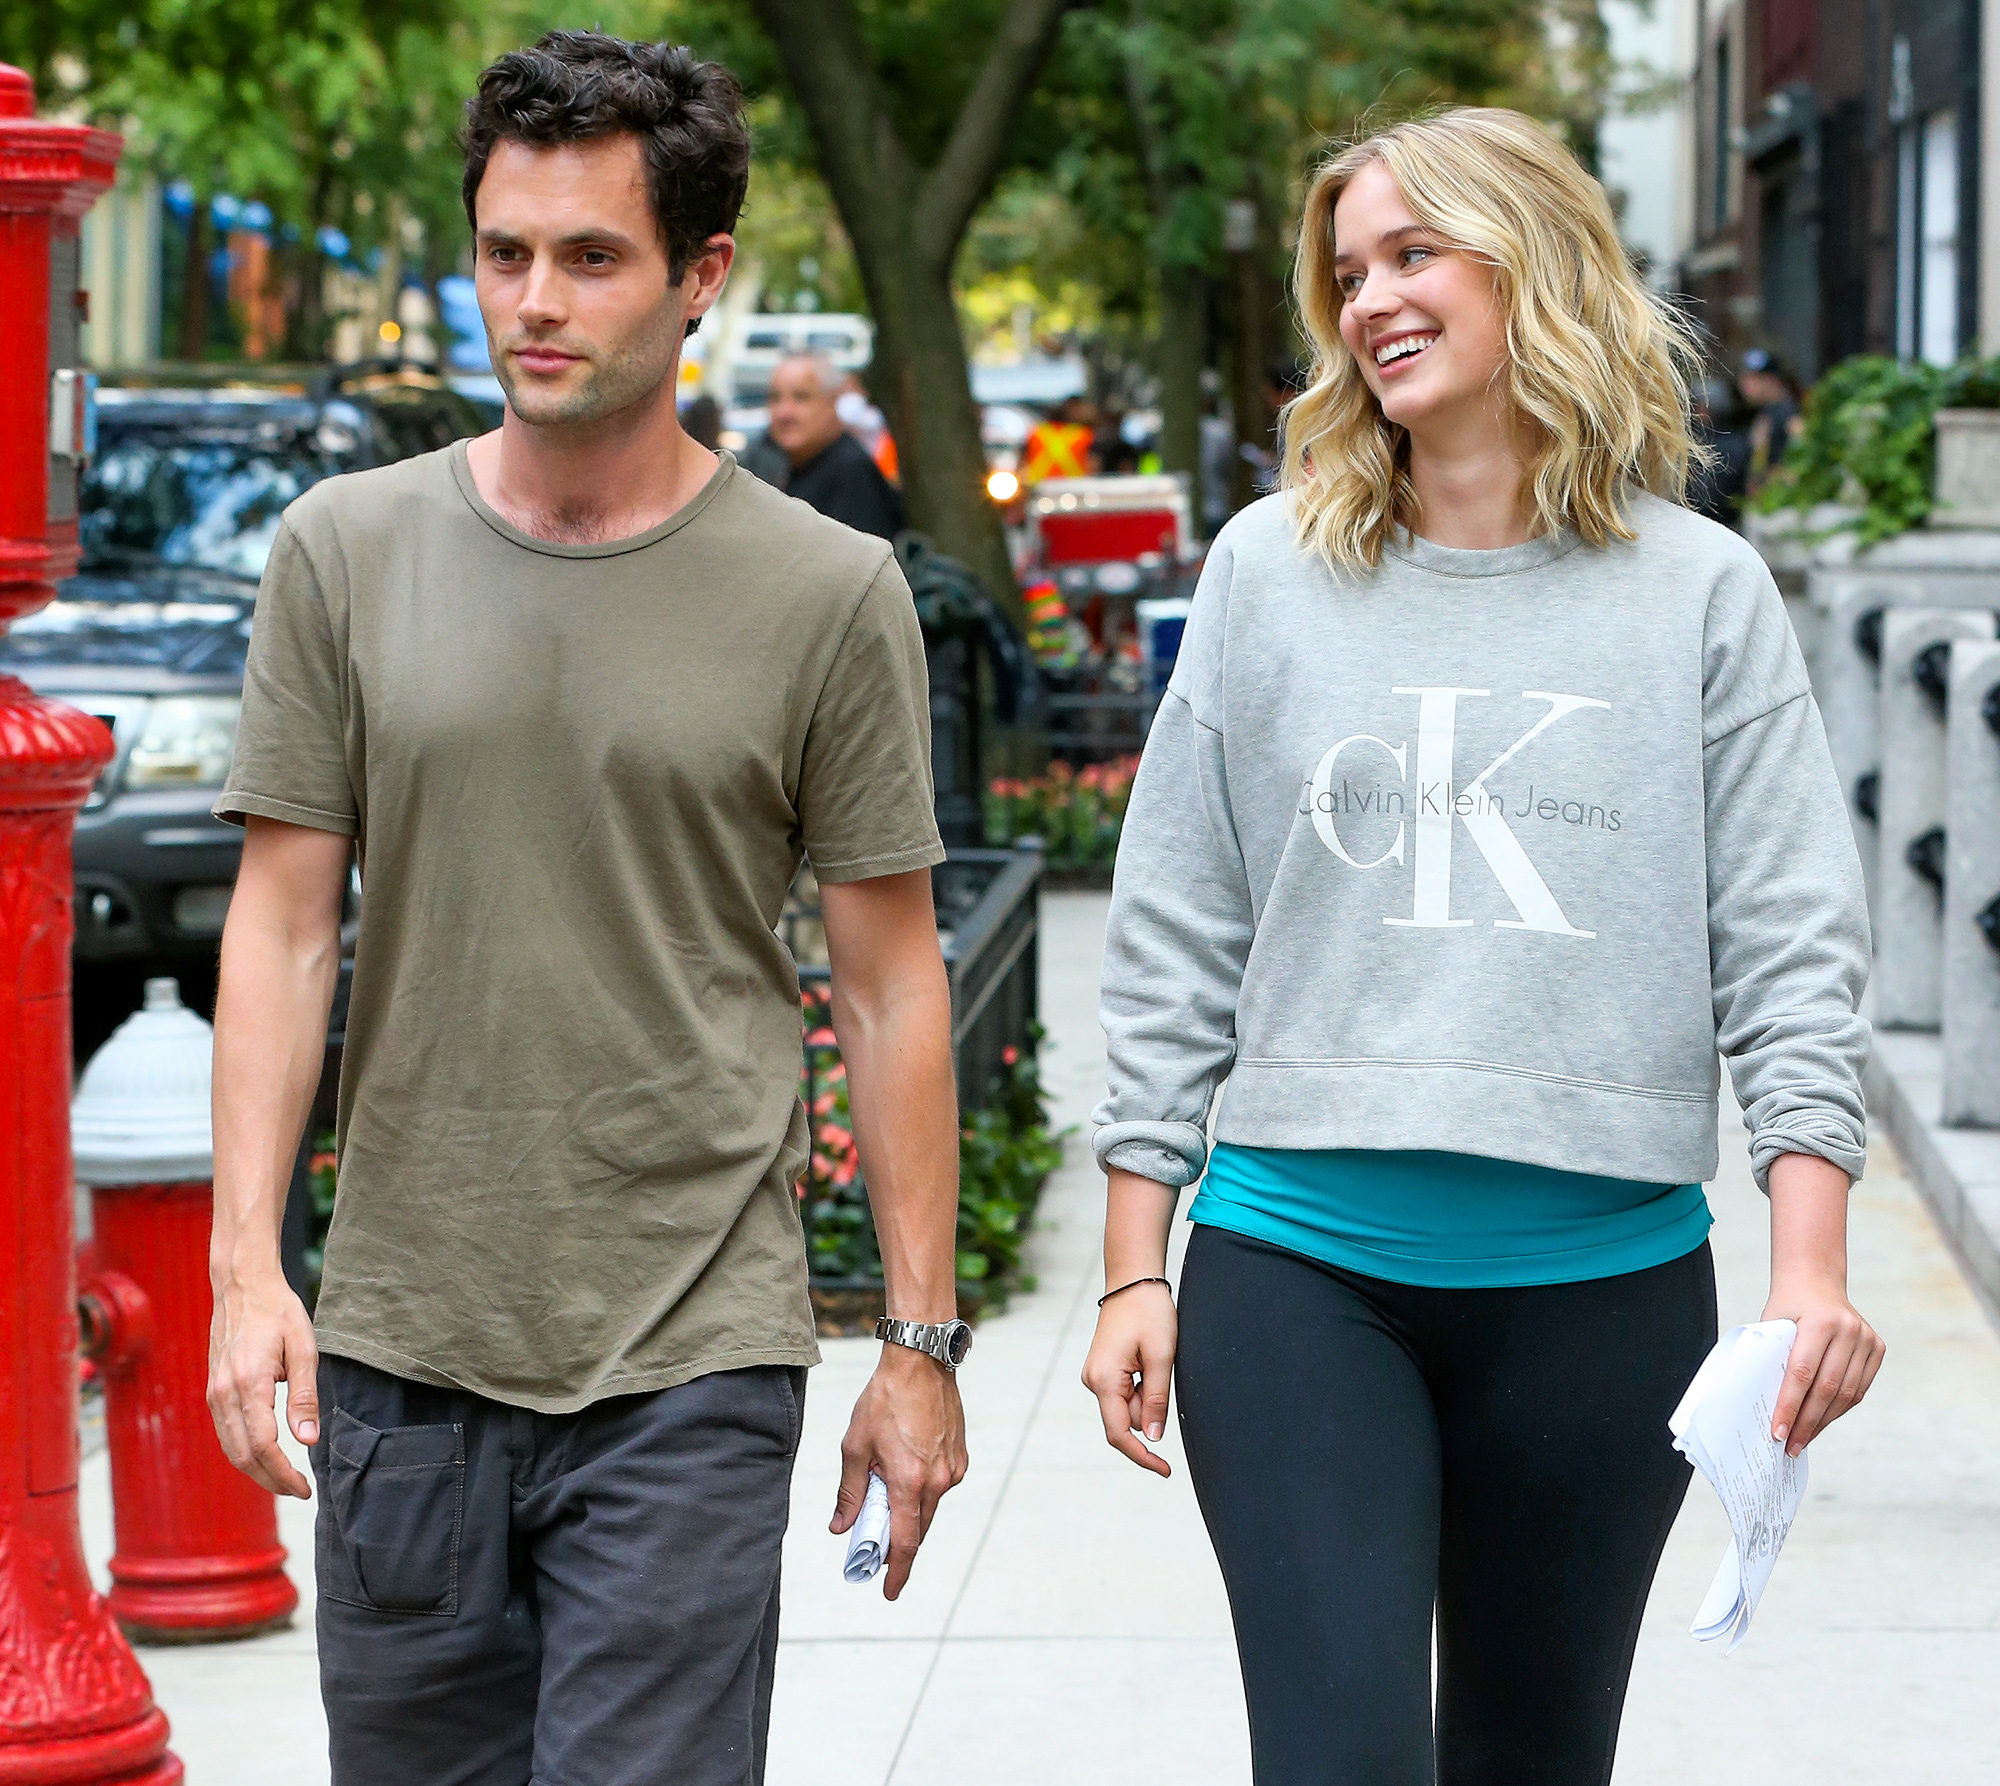 EXCLUSIVE: First shots of actor Penn Badgley and Elizabeth Lail as they walk to set on the Lifetime TV series 'You' filming by Gramercy Park in New York City